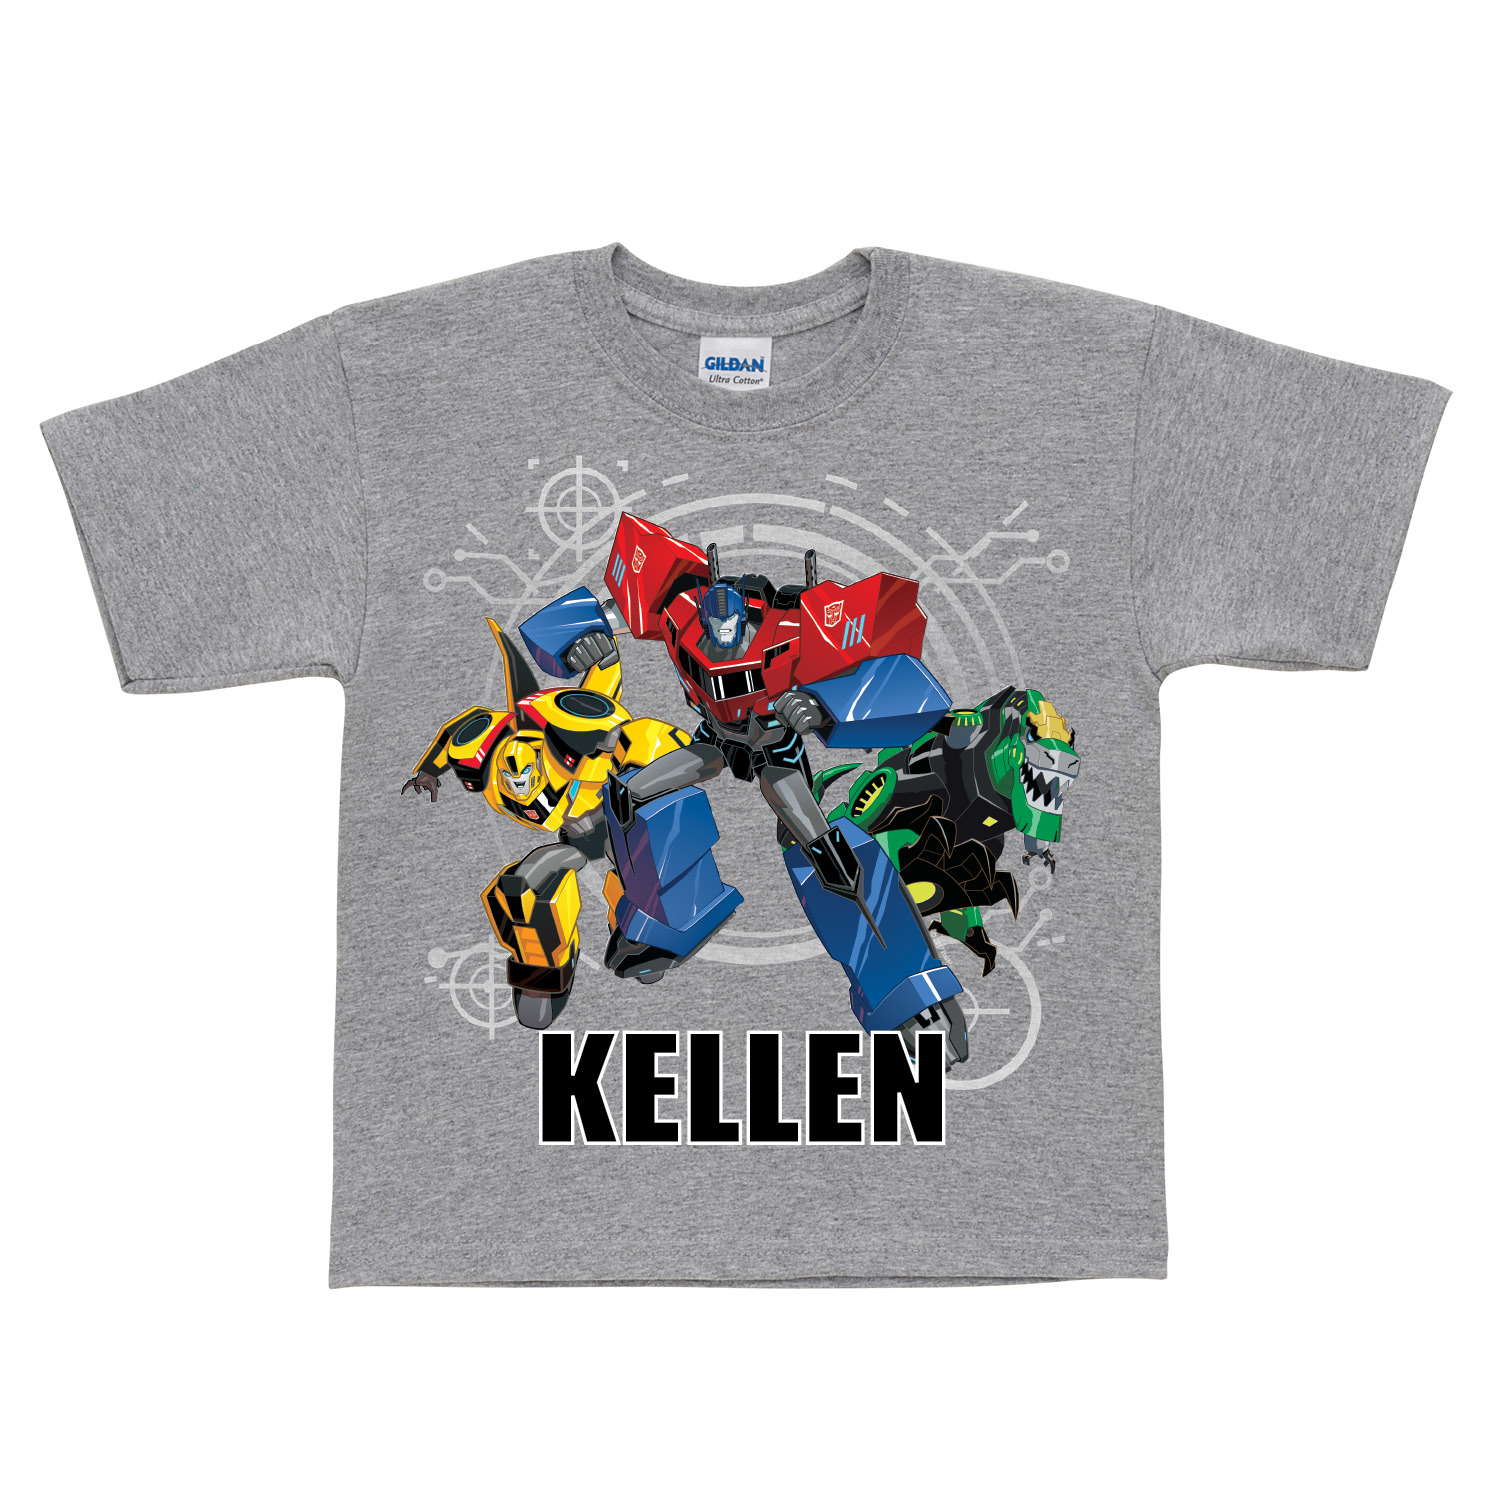 Personalized Gray T-Shirt - Transformers Robots in Disguise